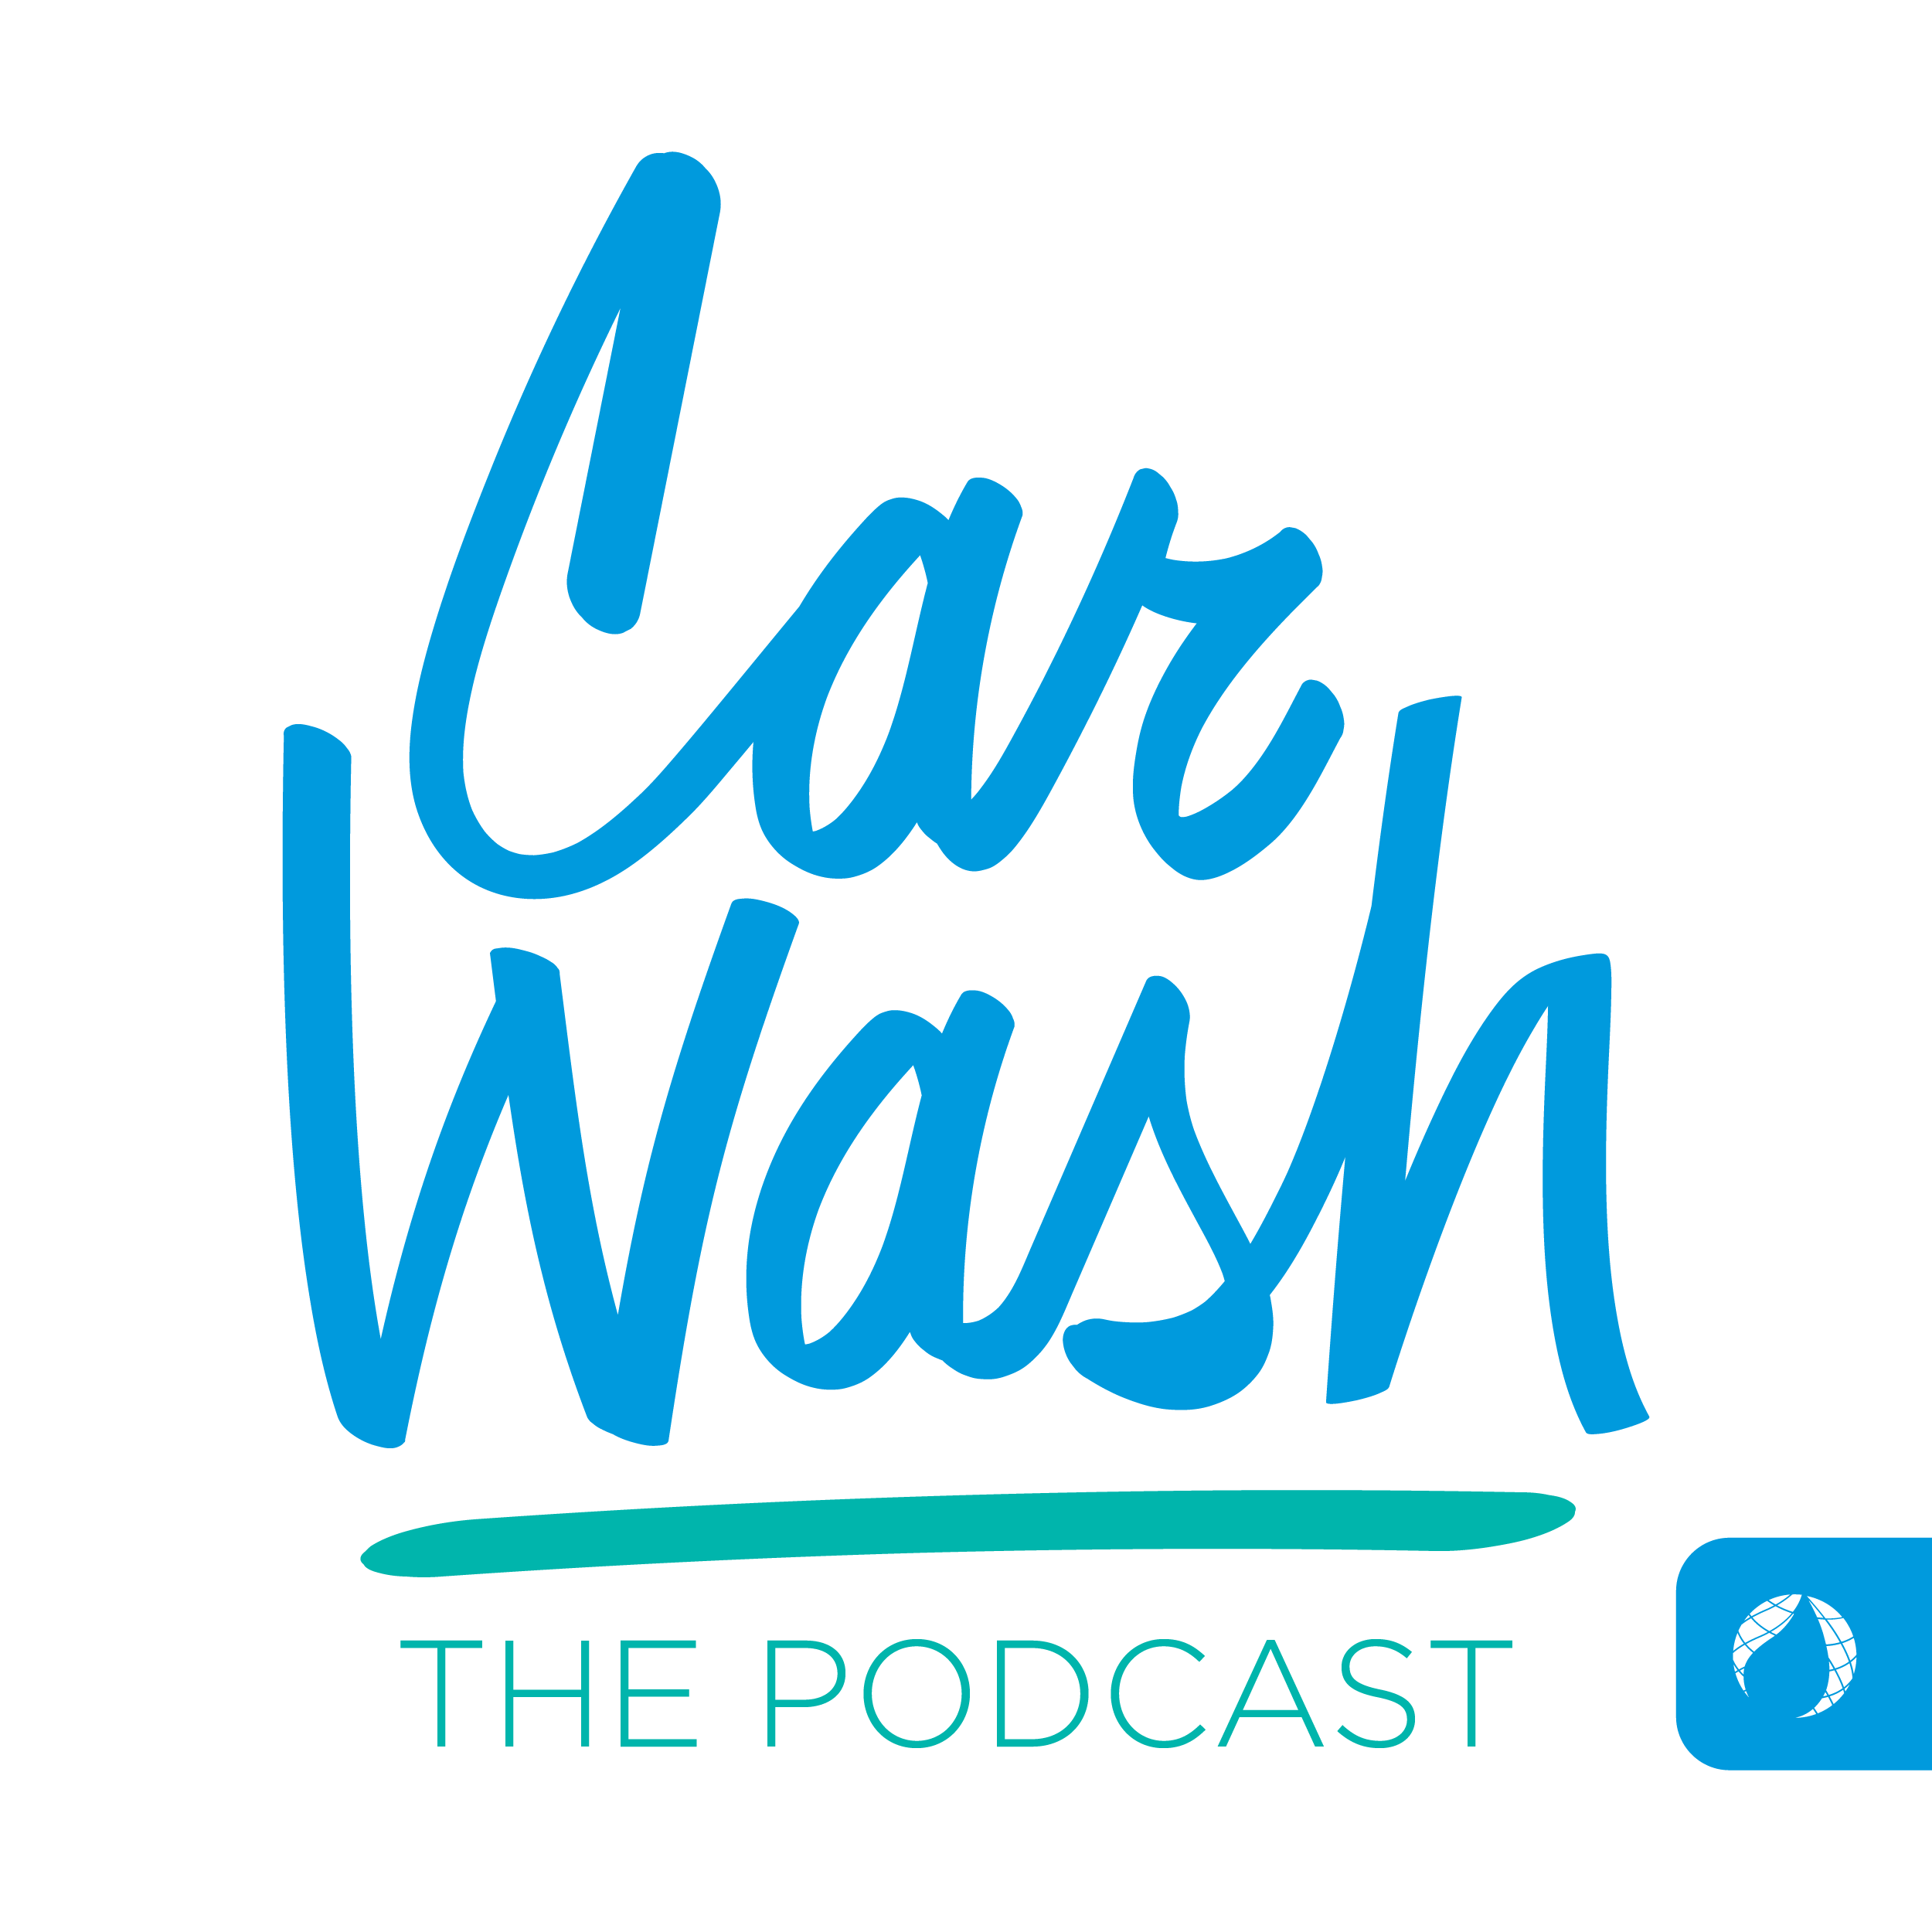 CAR WASH The Podcast show art